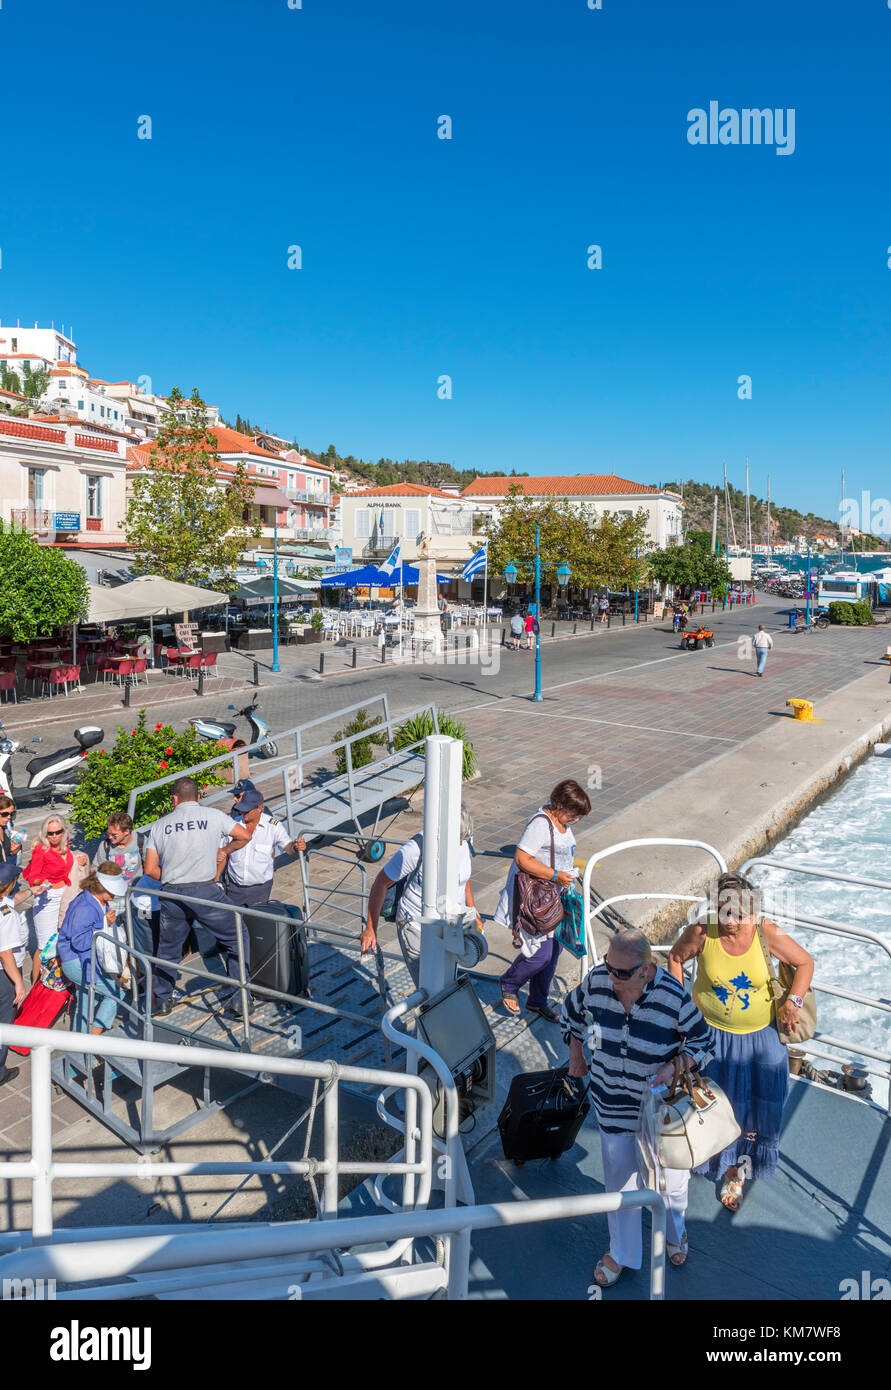 Passengers boarding the Hellenic Seaways FlyingCat at the harbour in Poros, Saronic Islands, Greece - Stock Image